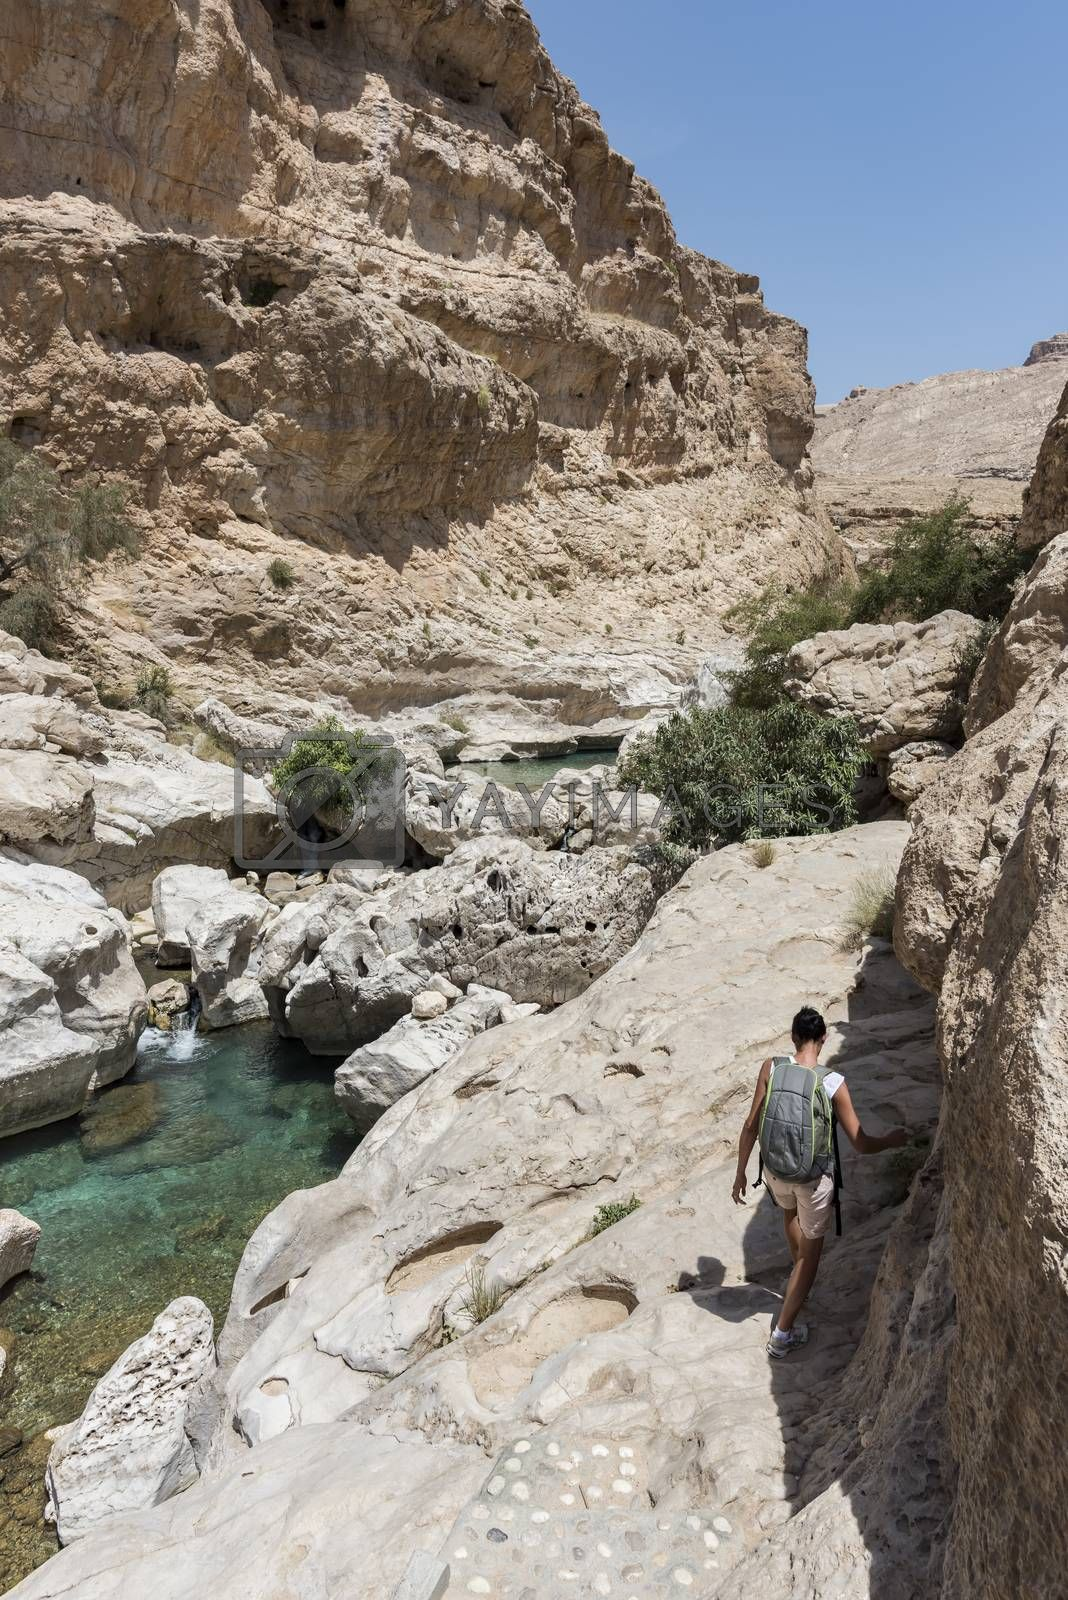 Woman in the 40s trekking near the river and pool in the canyon of Wadi Bani Khalid, in Oman, Middle East